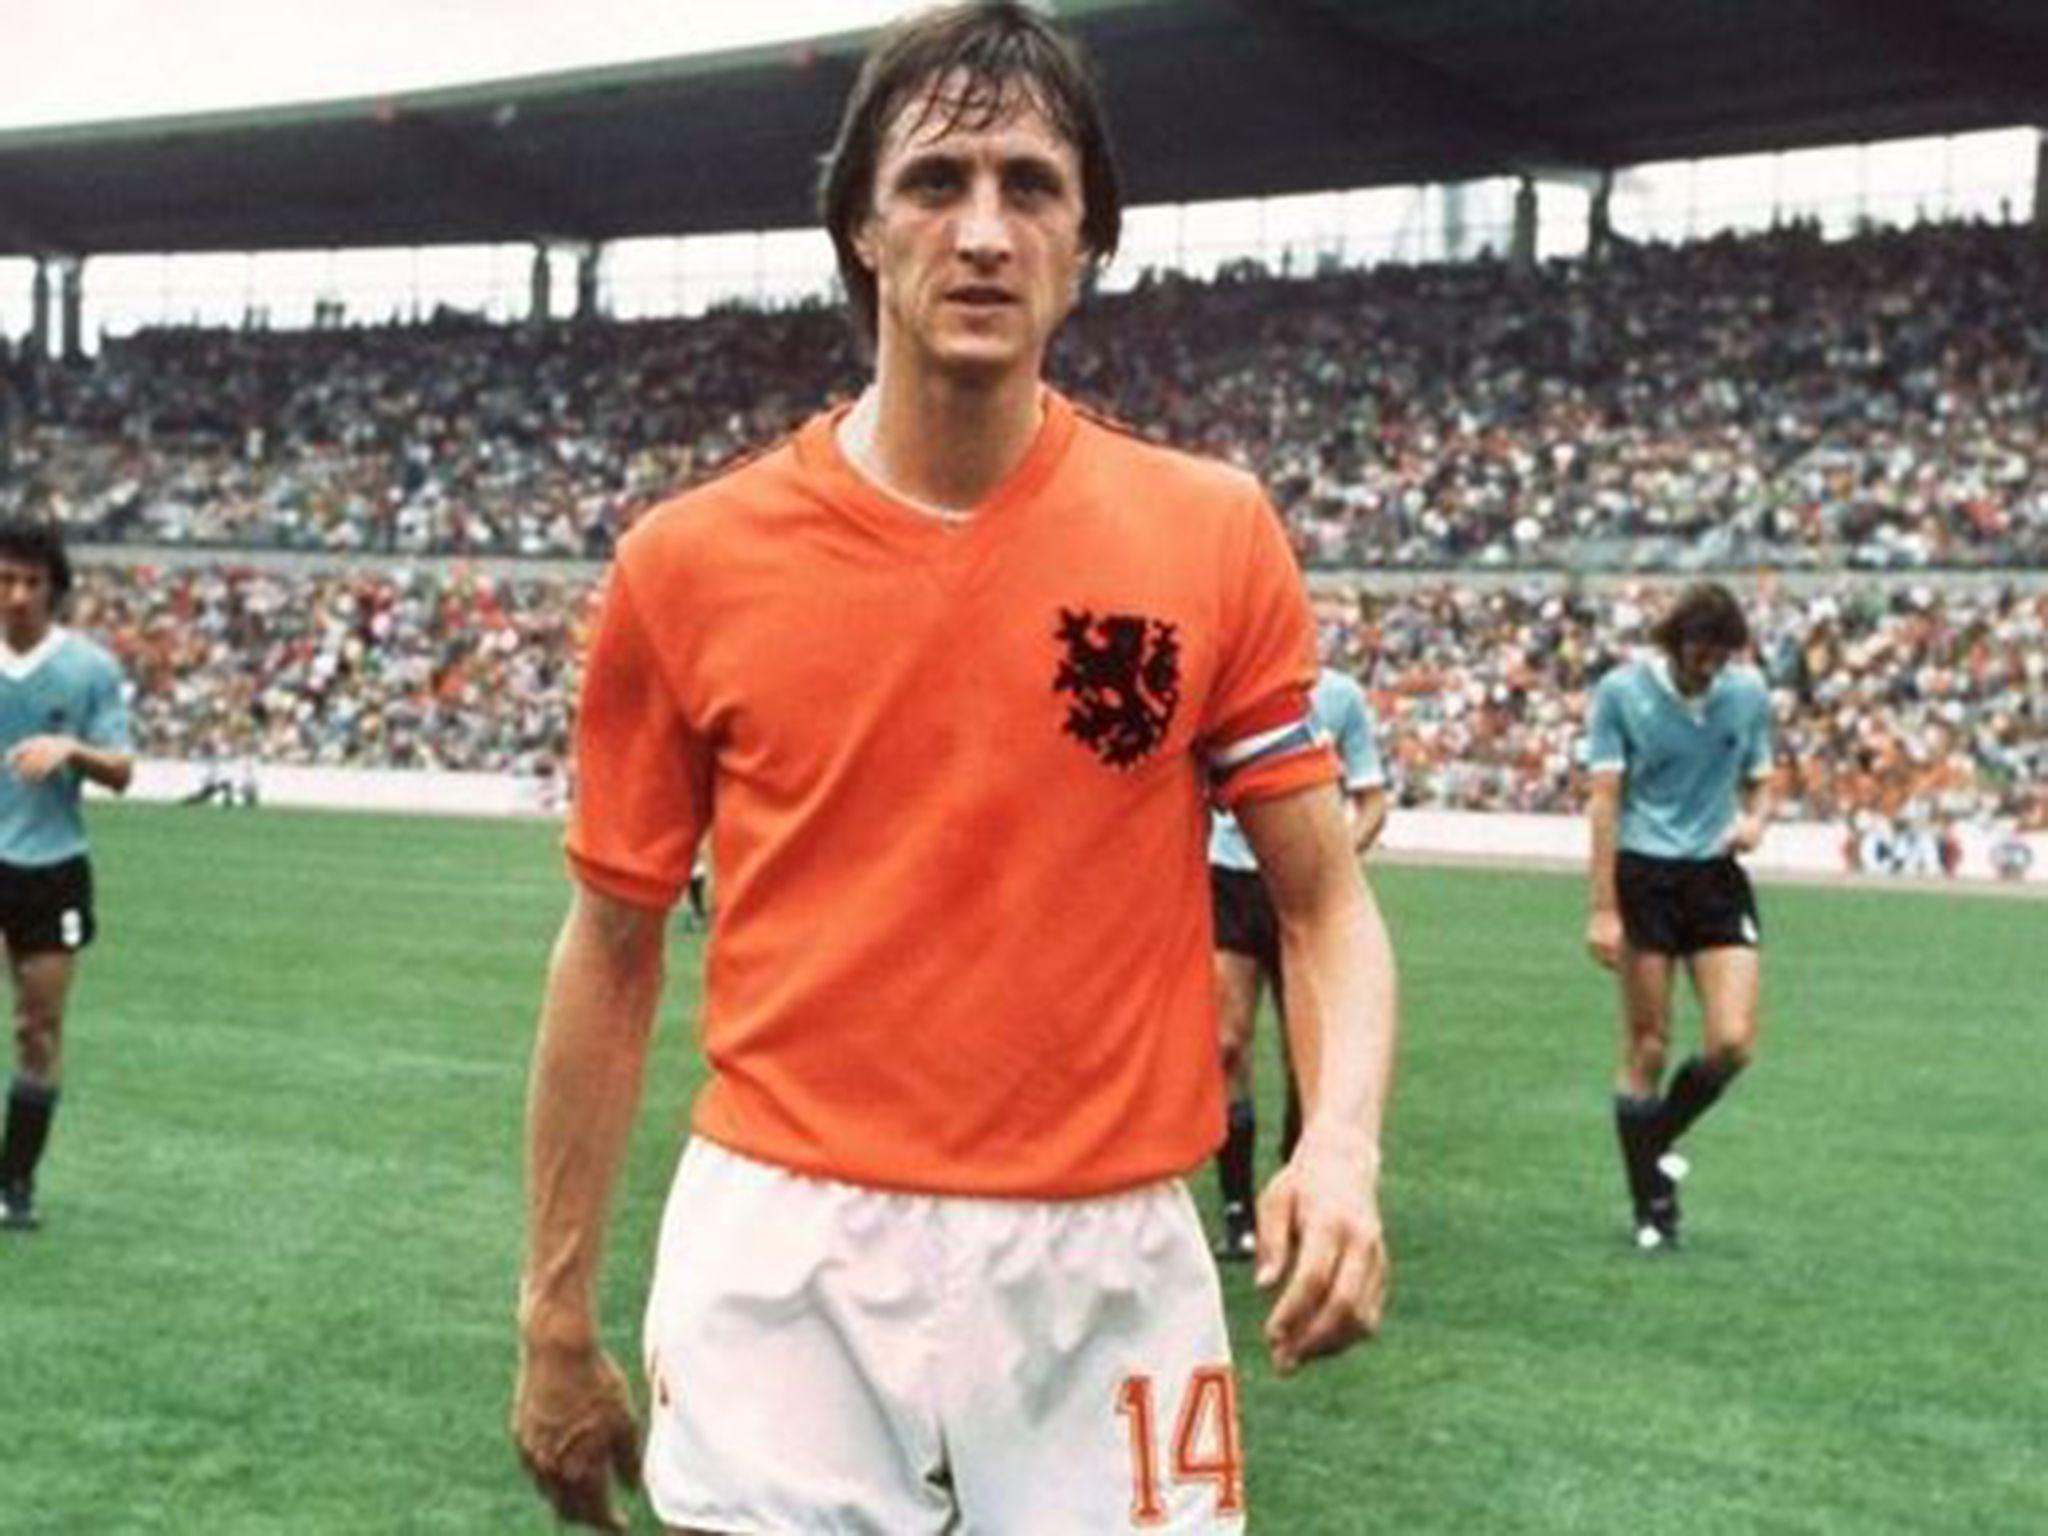 Johan Cruyff: Why the Dutch master wore the famous number 14 shirt